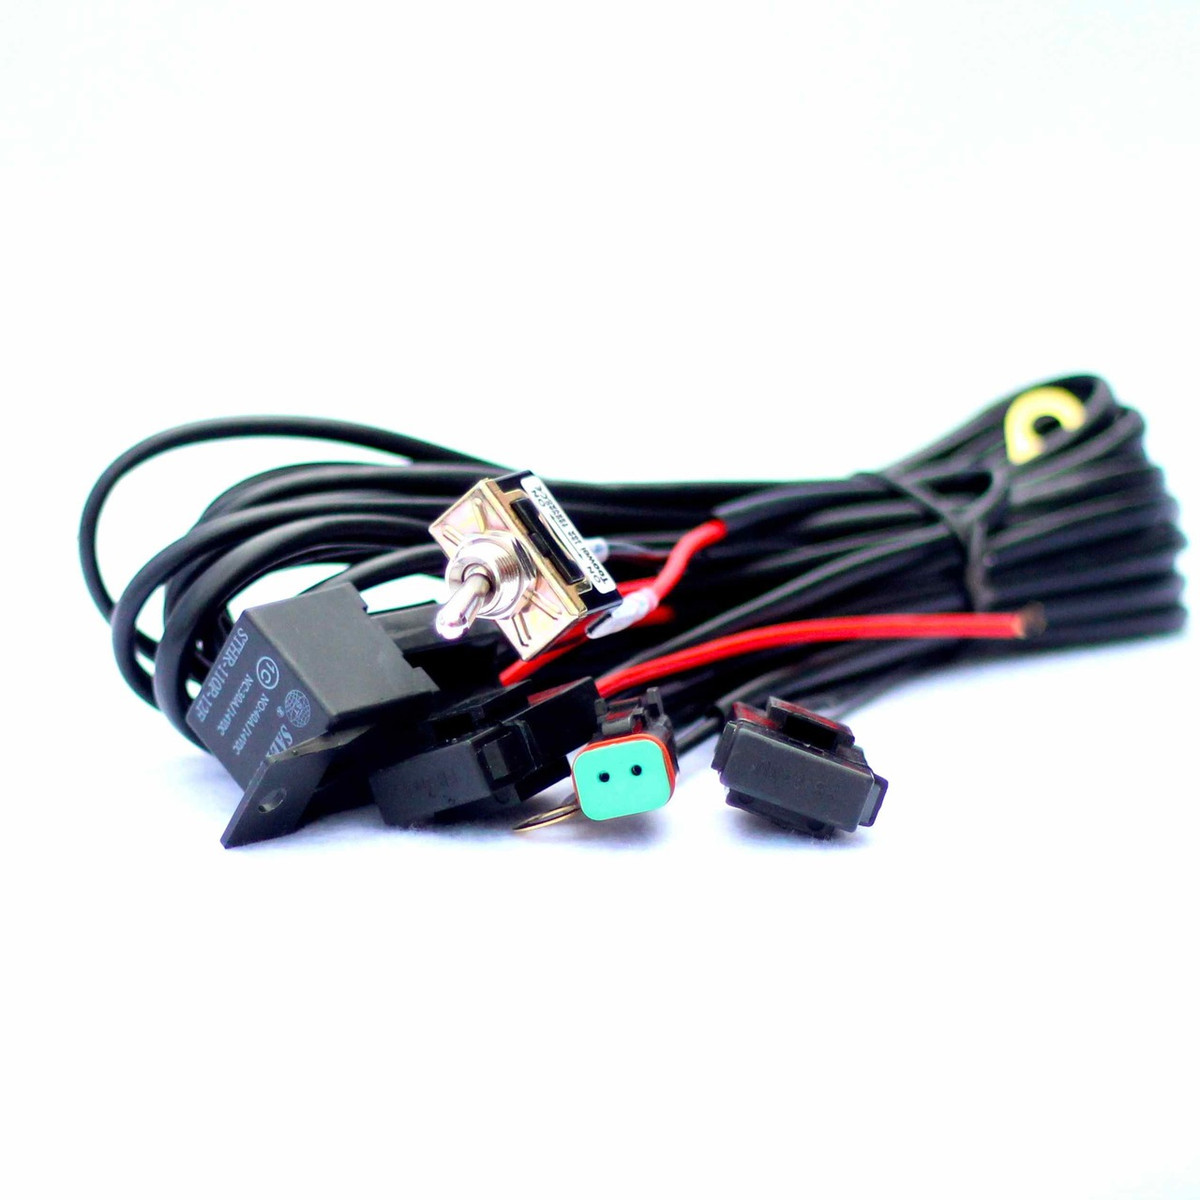 WH20_1__30625.1396140977?c=2 duck boat wiring harness for southern lite led boat lite boat wiring harness at reclaimingppi.co